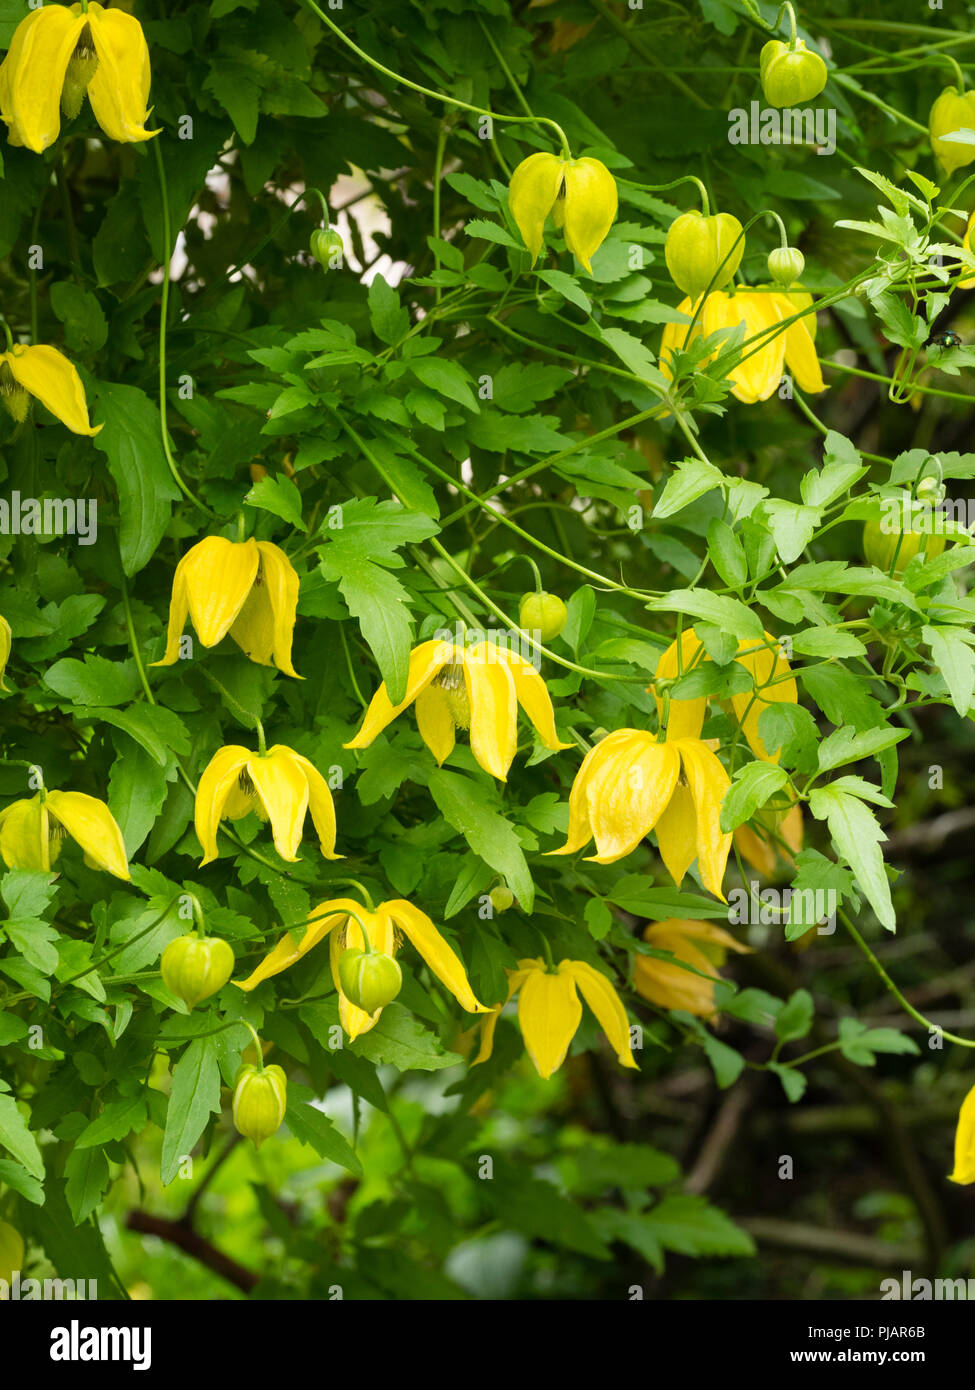 Yellow bell flowers of the hardy climber, Clematis tangutica 'Lambton Park'.  Flowers are larger than the species, - Stock Image